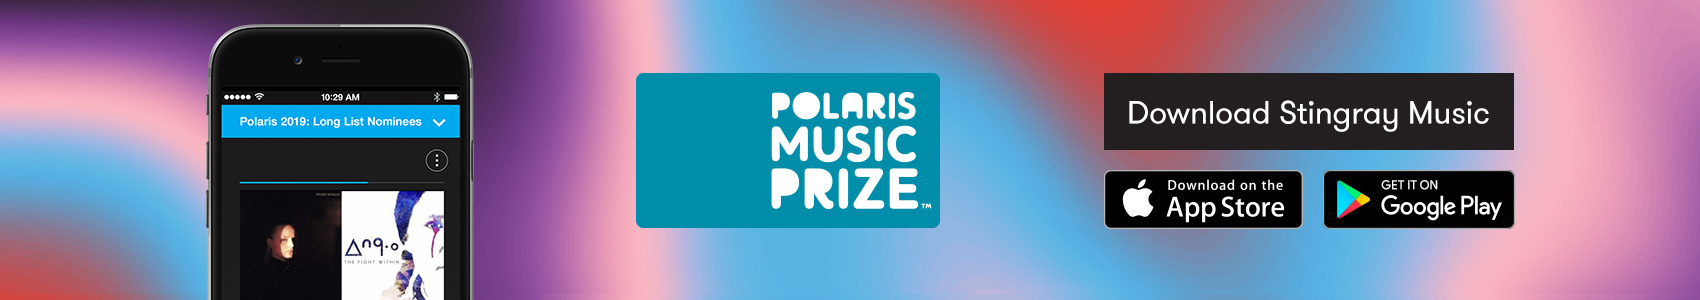 Polaris Music Prize - Listen to our channels